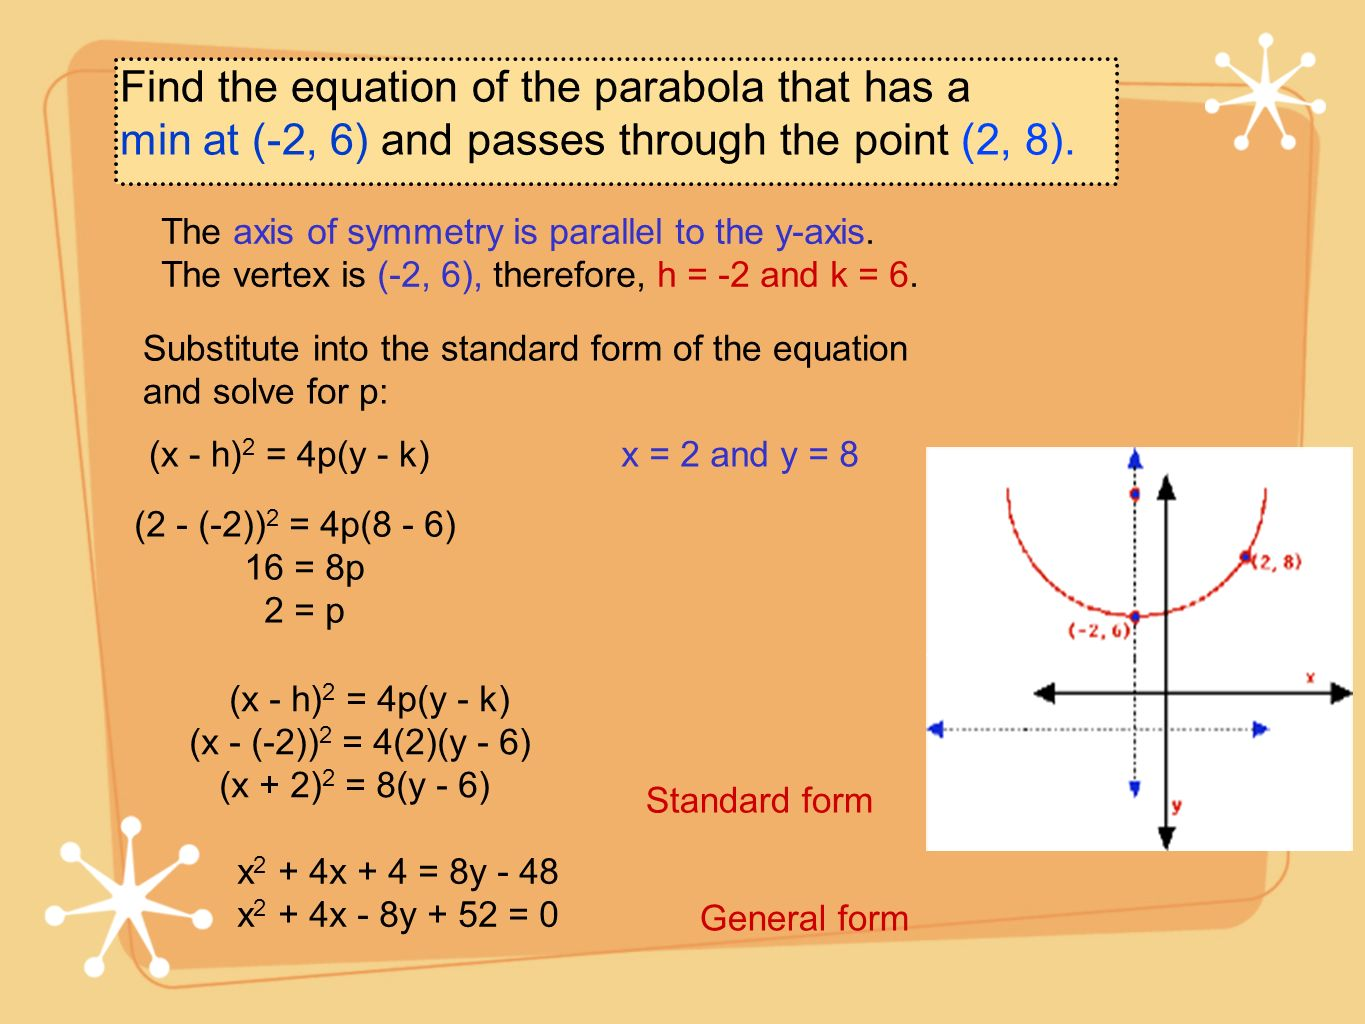 Find the equation of the parabola that has a